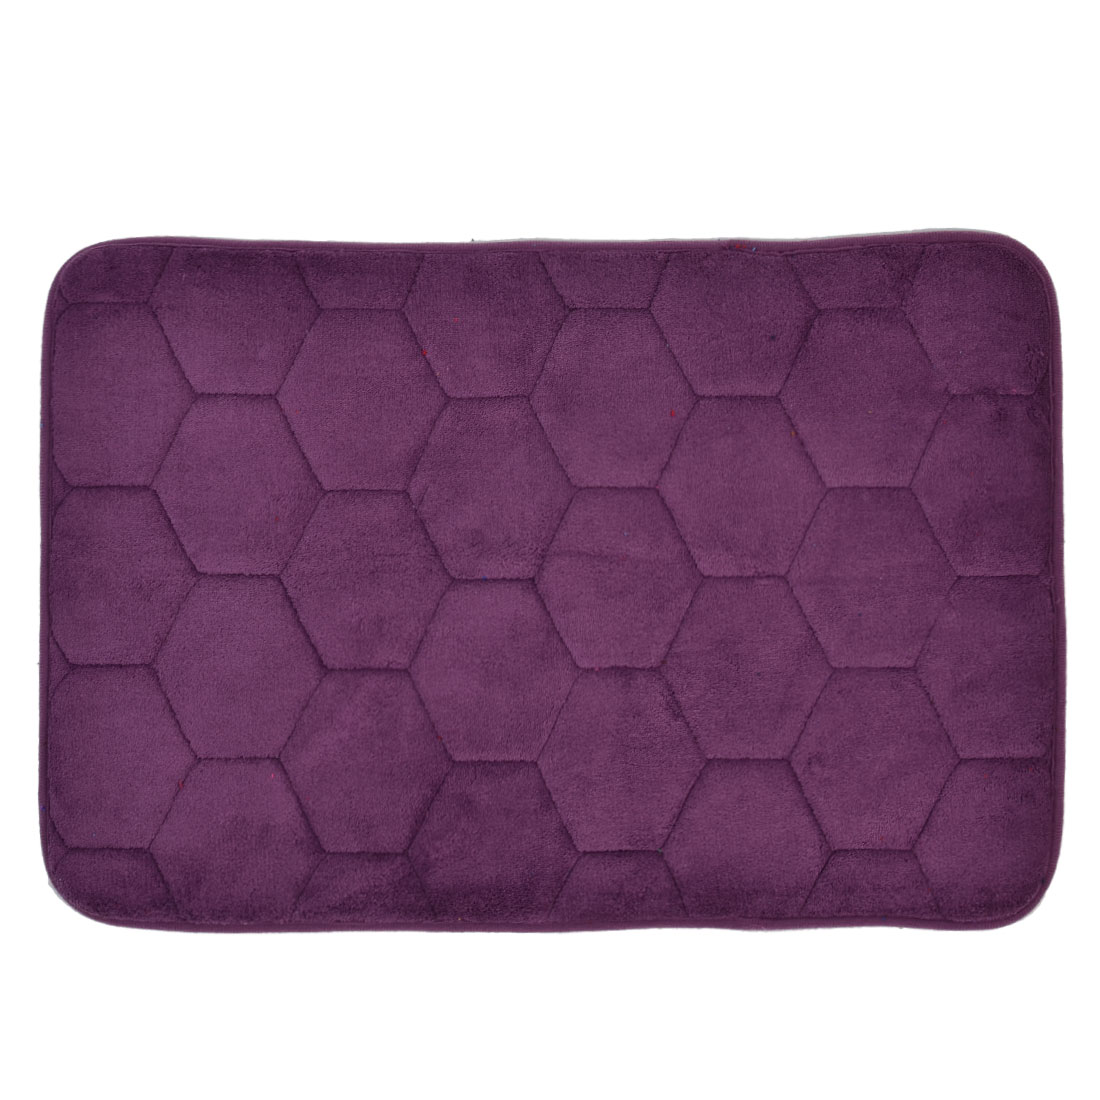 59cm x 40cm Purple Polyester Hexagon Pattern Absorbent Slip-resistant Shower Rug